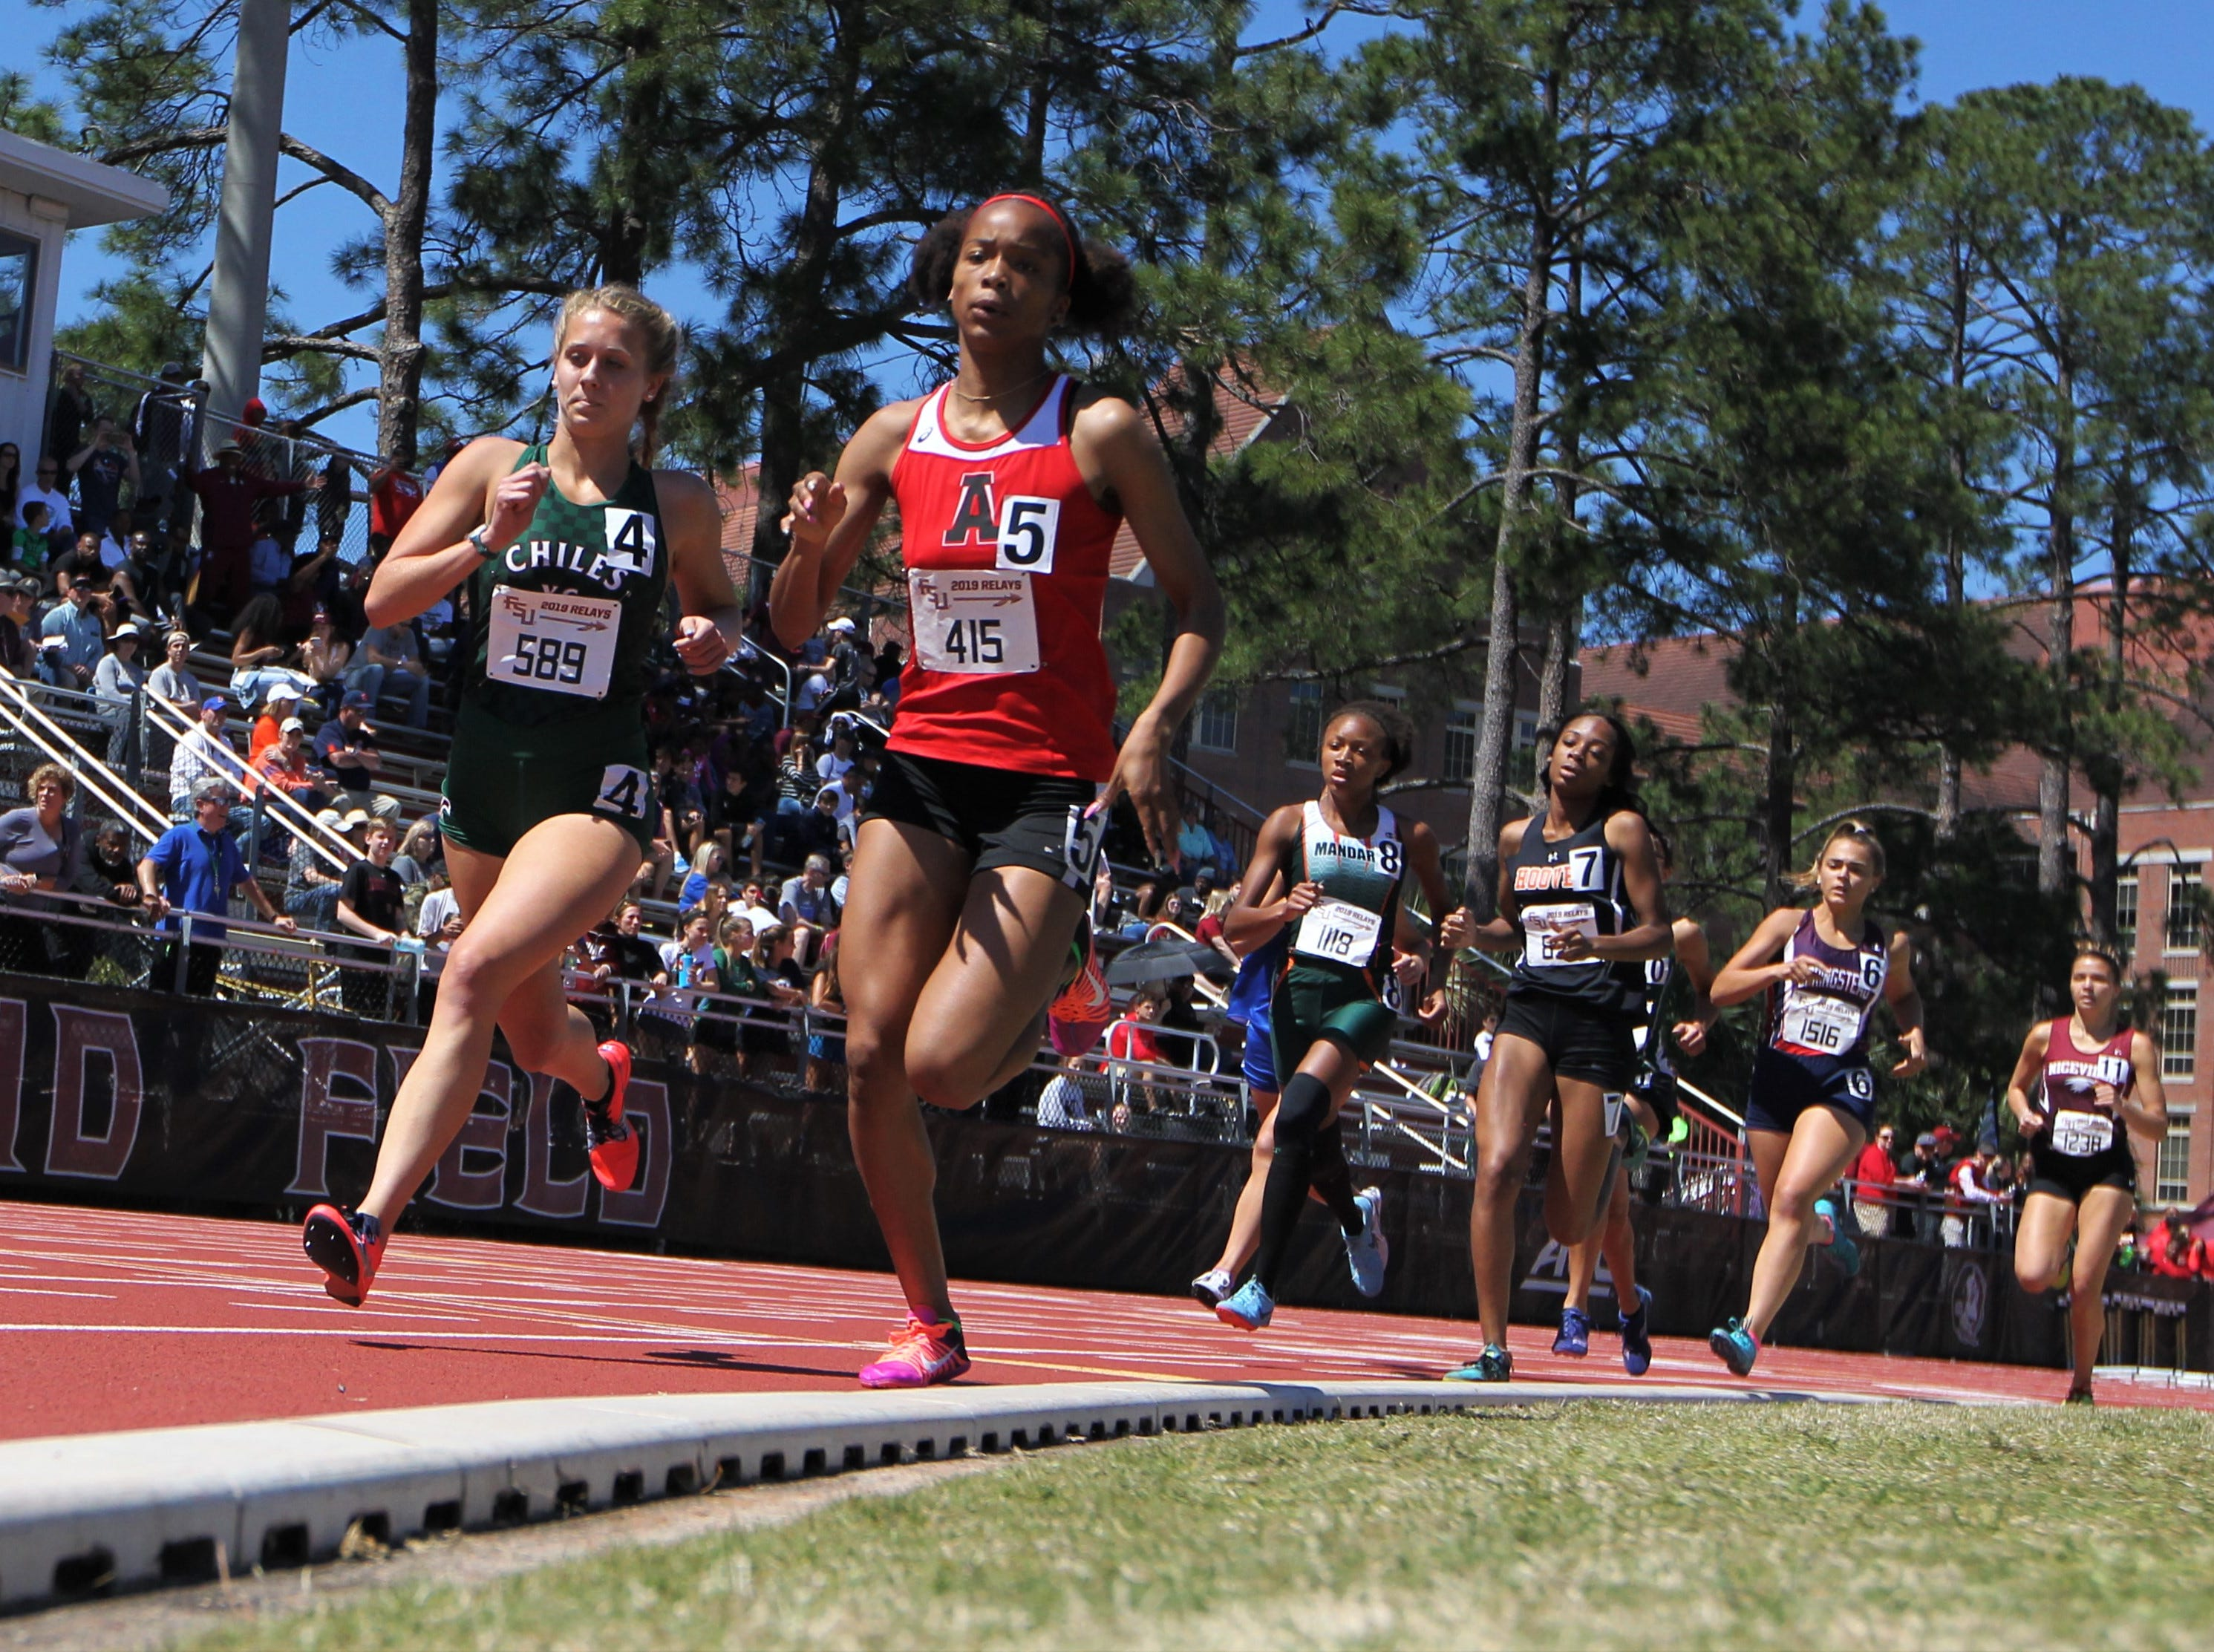 Chiles junior Caitlin Wilkey races next to Alexander's Jazzmin Taylor in the 800-meter run during the FSU Relays at Mike Long Track on Friday, March 22, 2019.